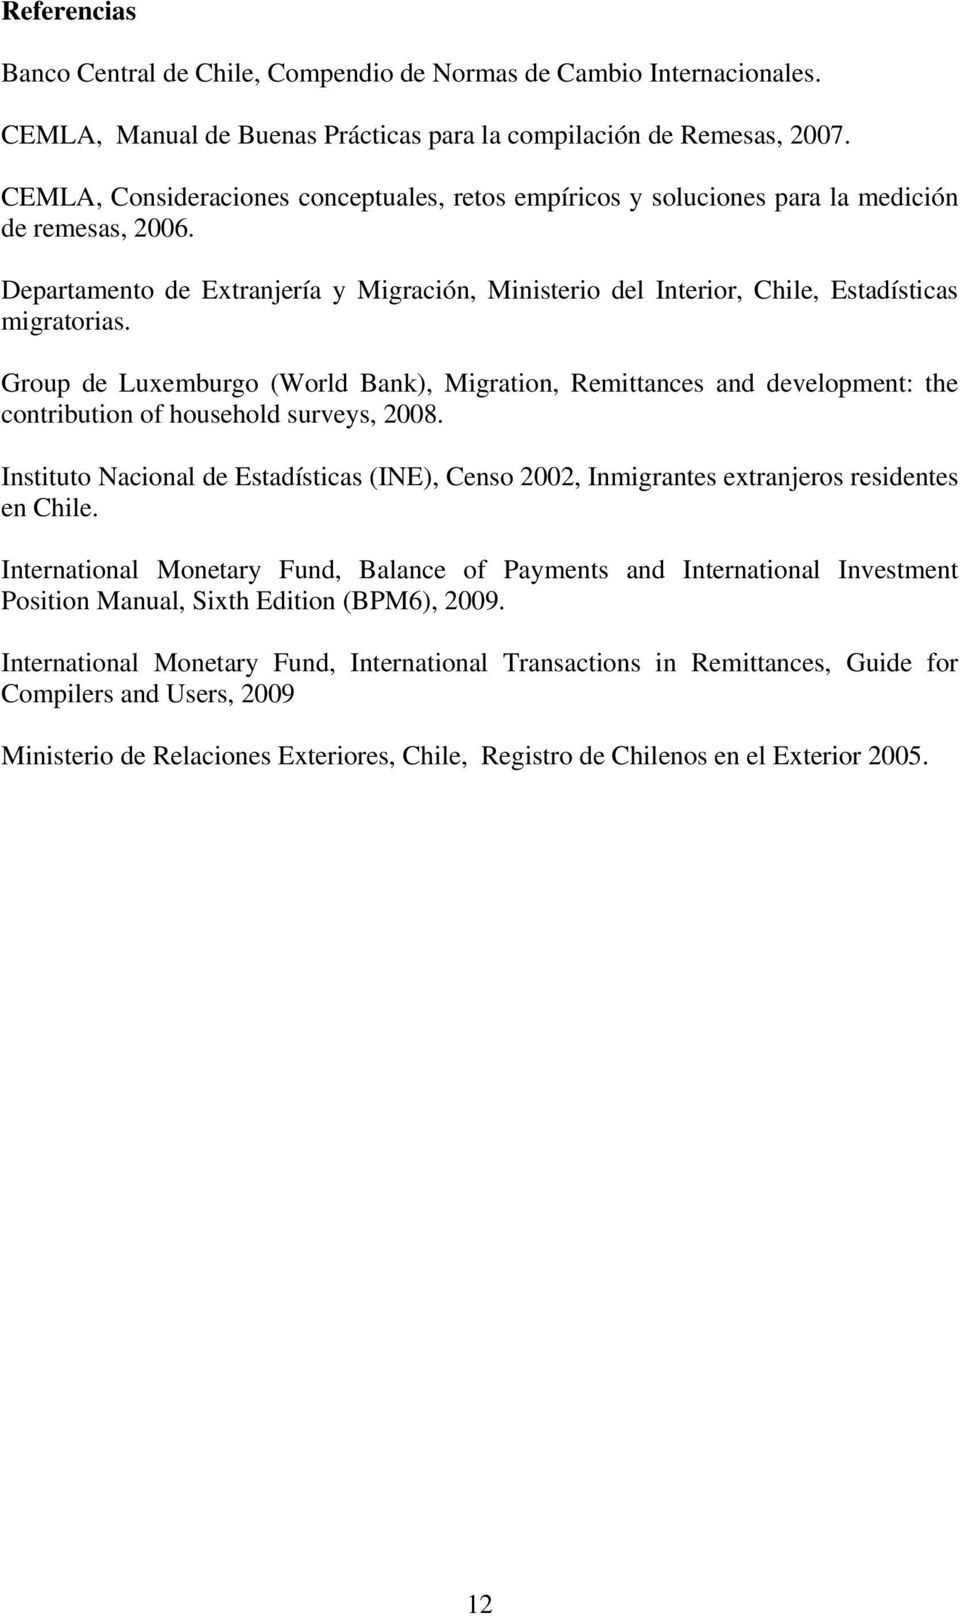 Group de Luxemburgo (World Bank), Migration, Remittances and development: the contribution of household surveys, 2008.